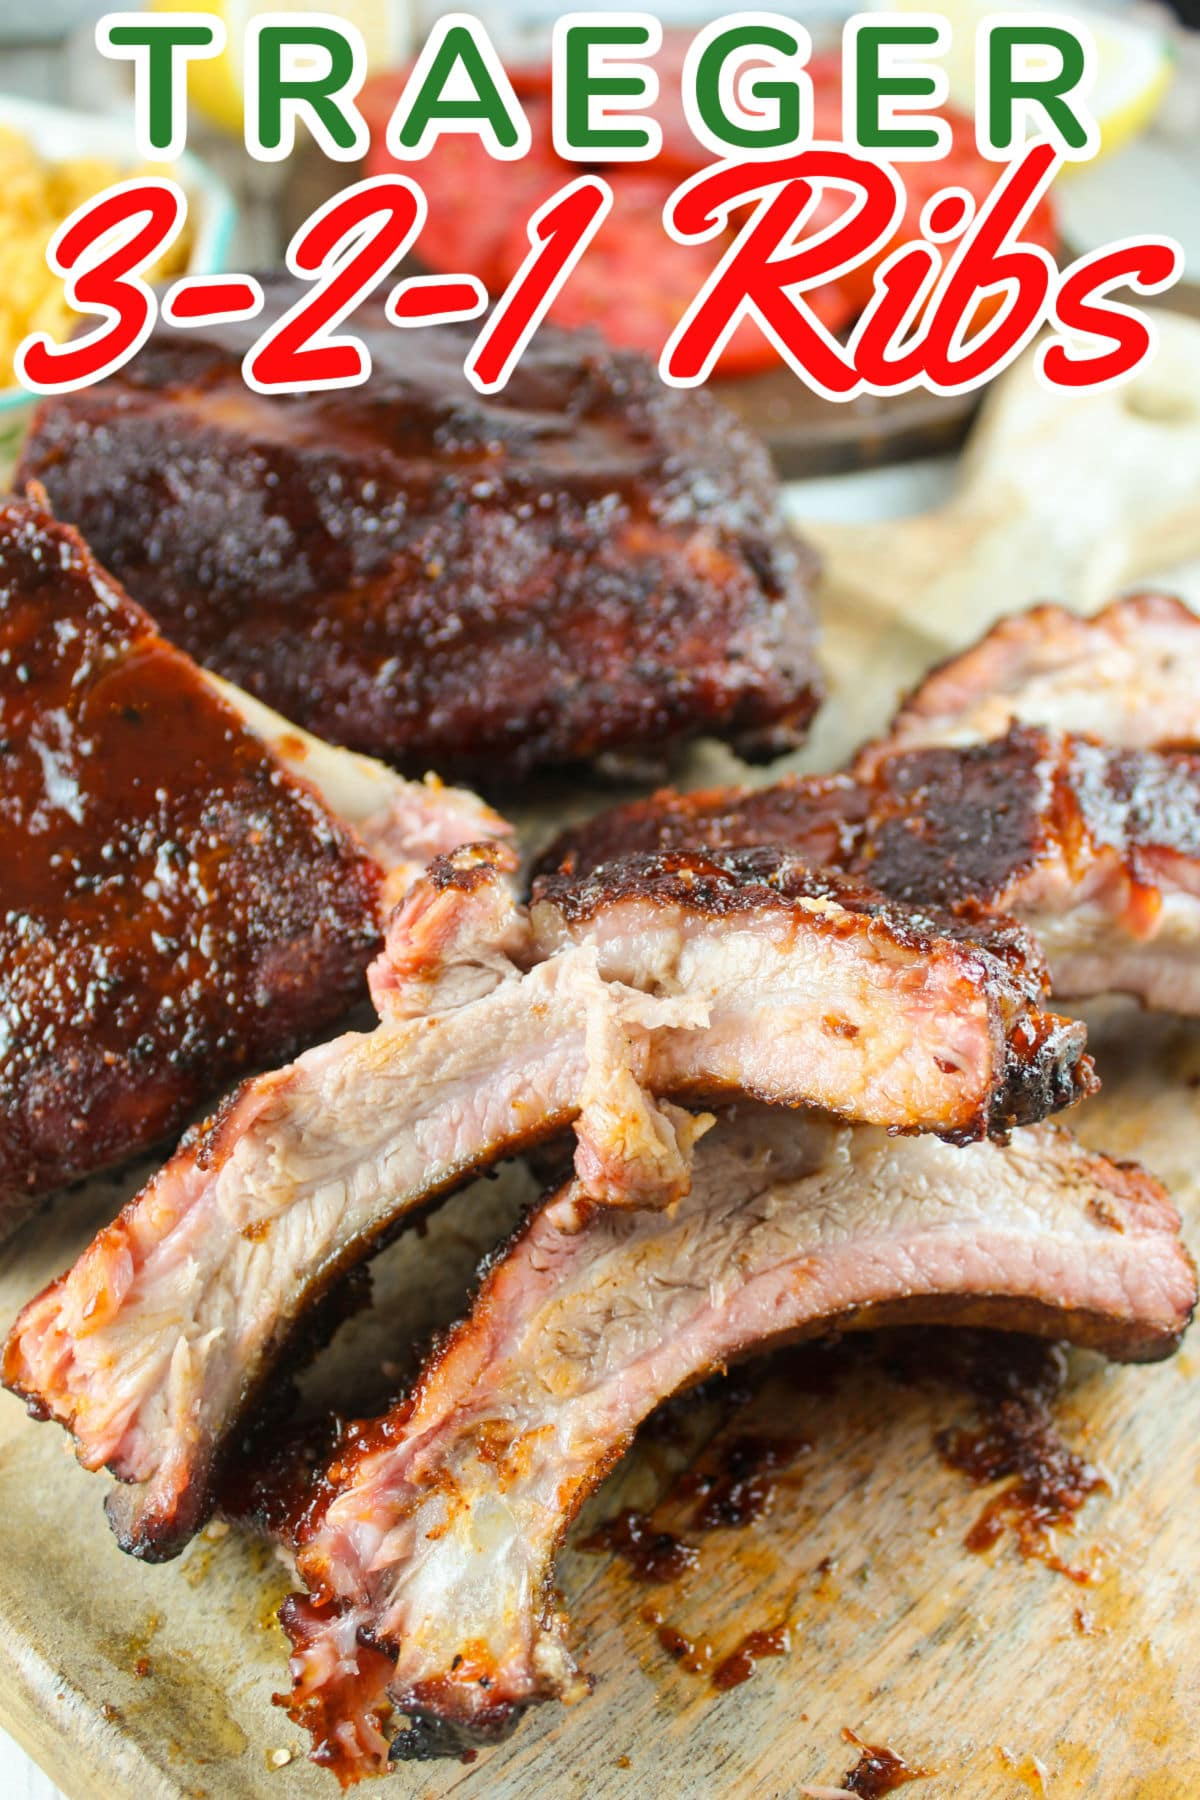 Traeger 3-2-1 Ribs are so freakin simple!!!! Like - why did I not make these 2 years ago when I got my Traeger???? And all you need is a rub, a little sauce and a little juice (or soda - or beer - just open the fridge). And don't worry -they're delicious too!!! via @foodhussy